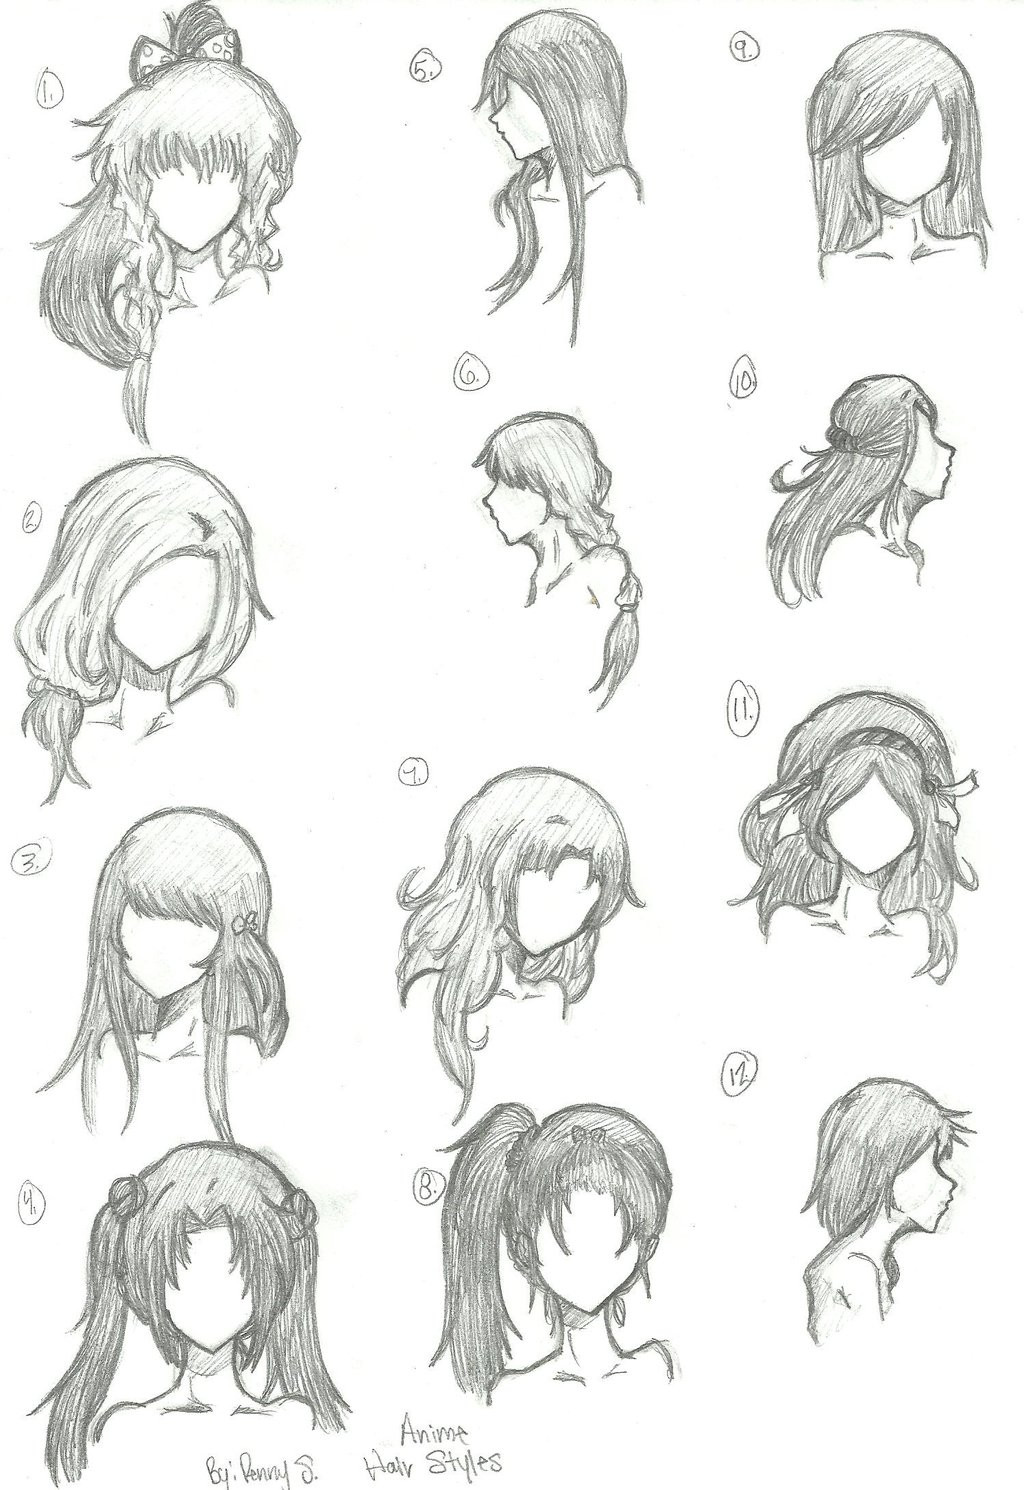 Best ideas about Girl Anime Hairstyles . Save or Pin Hair Styles 1 12 by animebleach14 on DeviantArt Now.